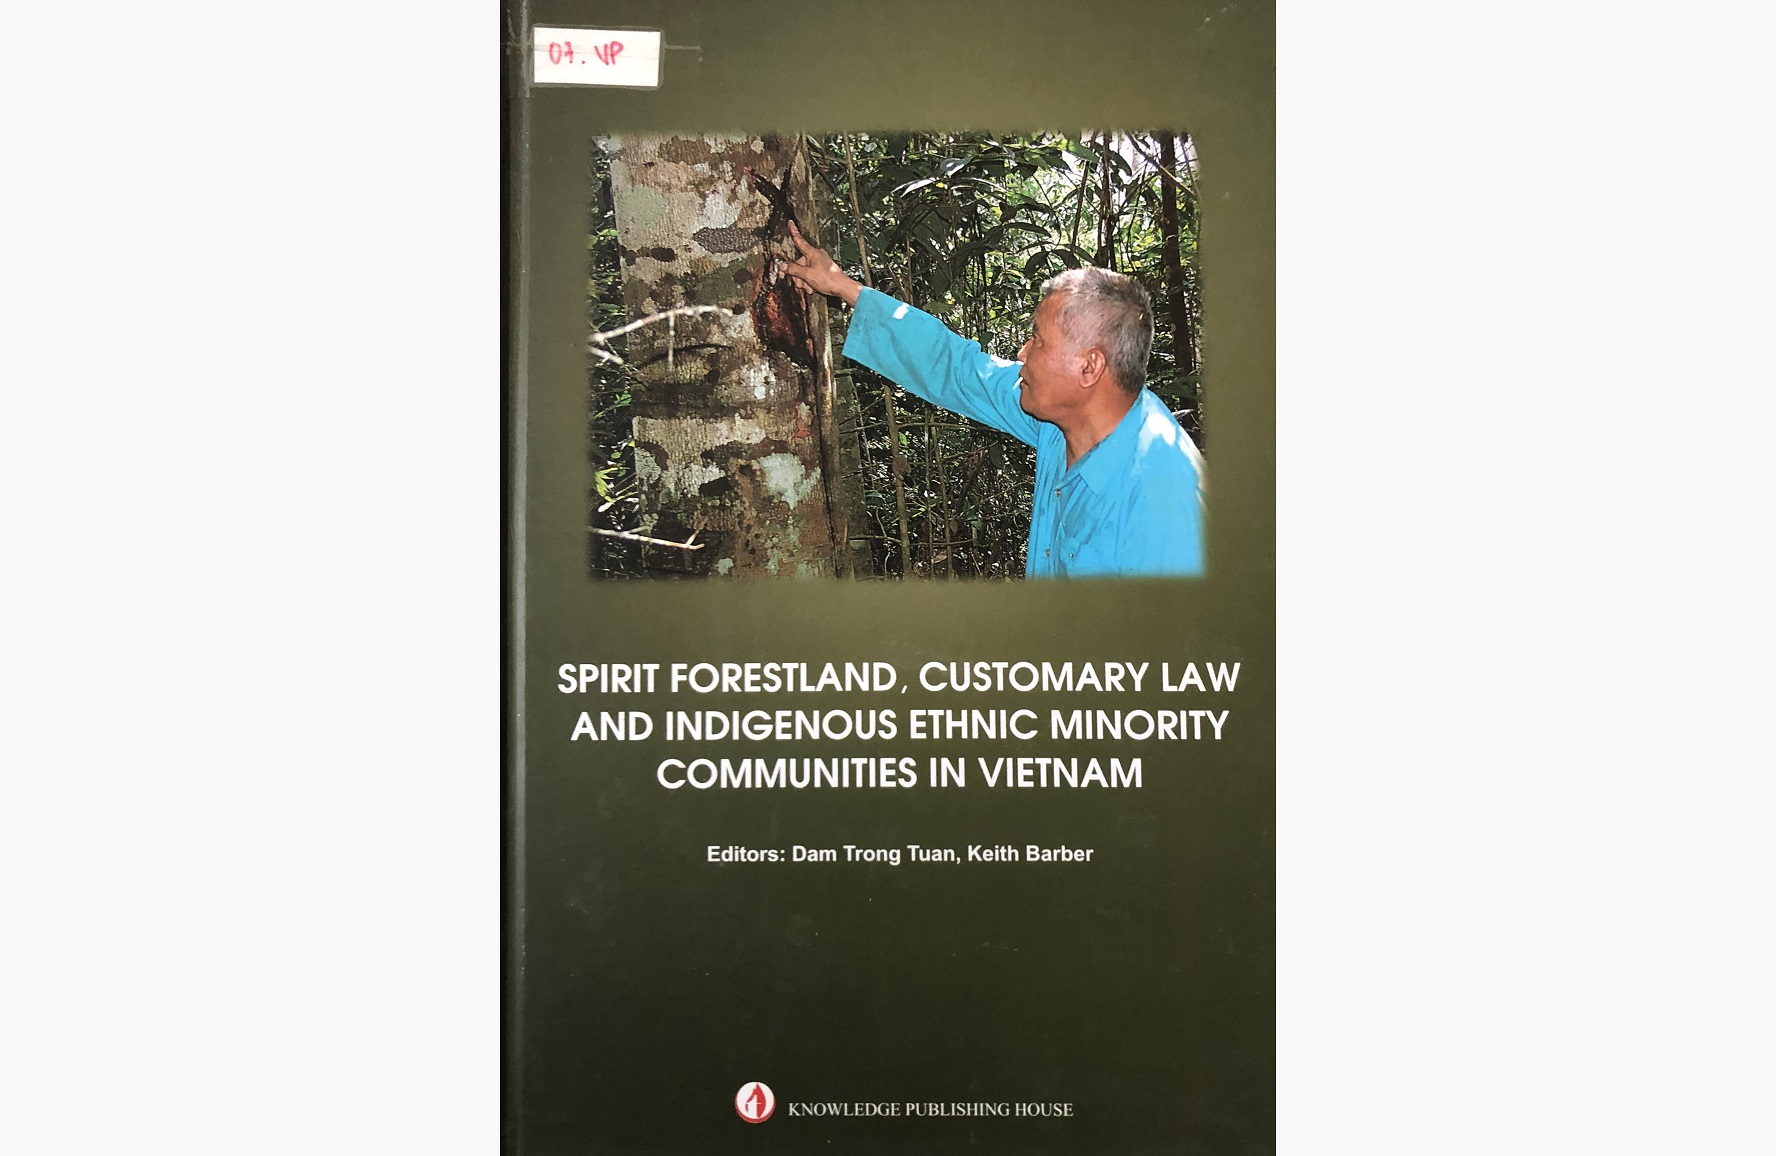 Spirit Forestland, Custumary Law and Indigenous Ethnic Minority Communities in Viet Nam